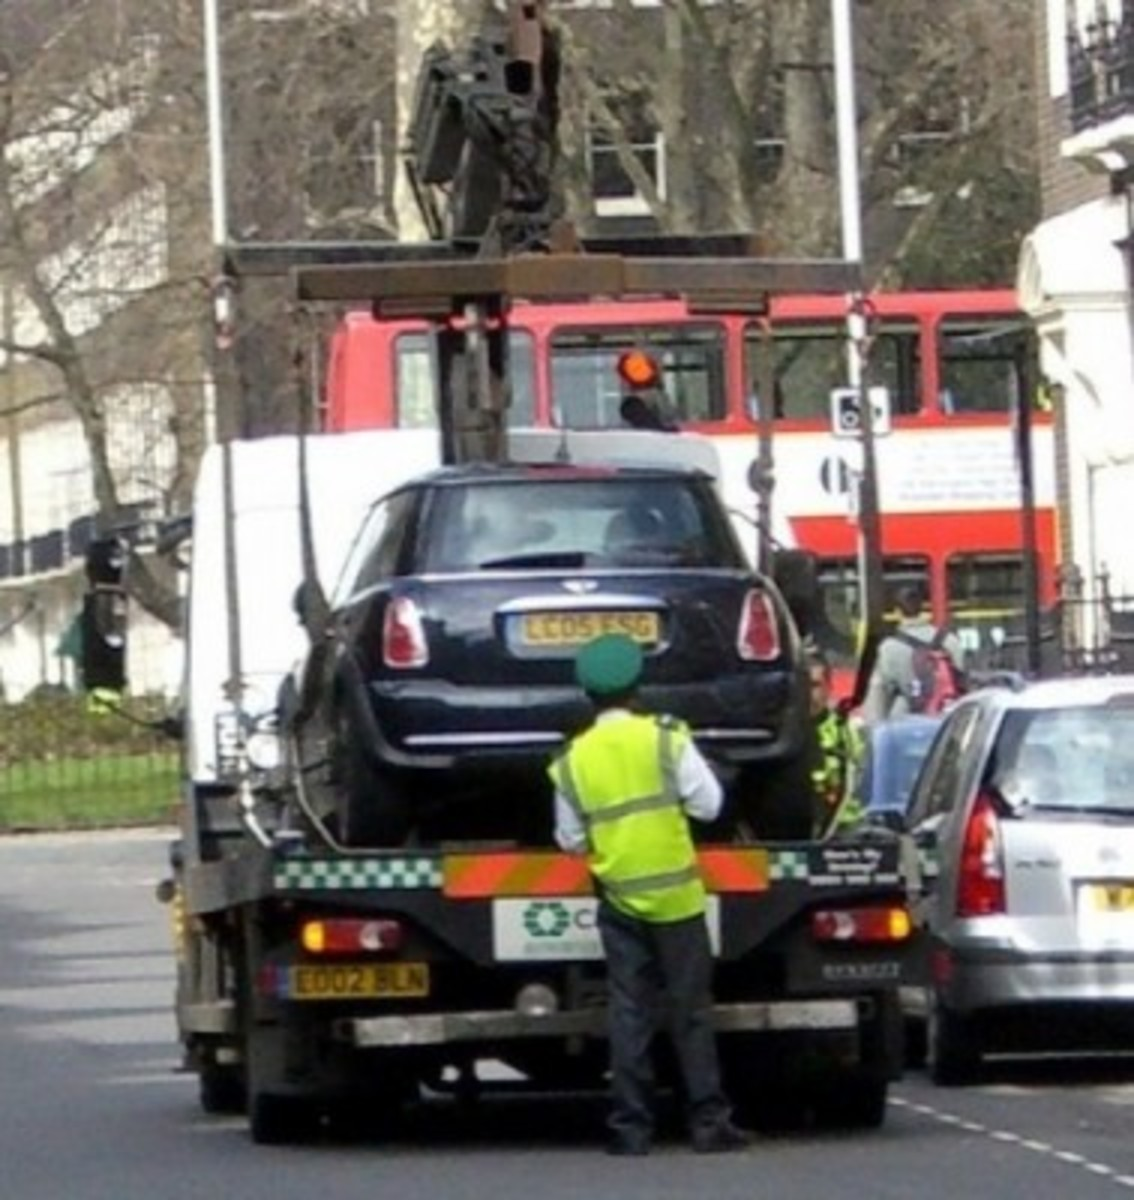 Towing service loading a car on a flatbed tow truck